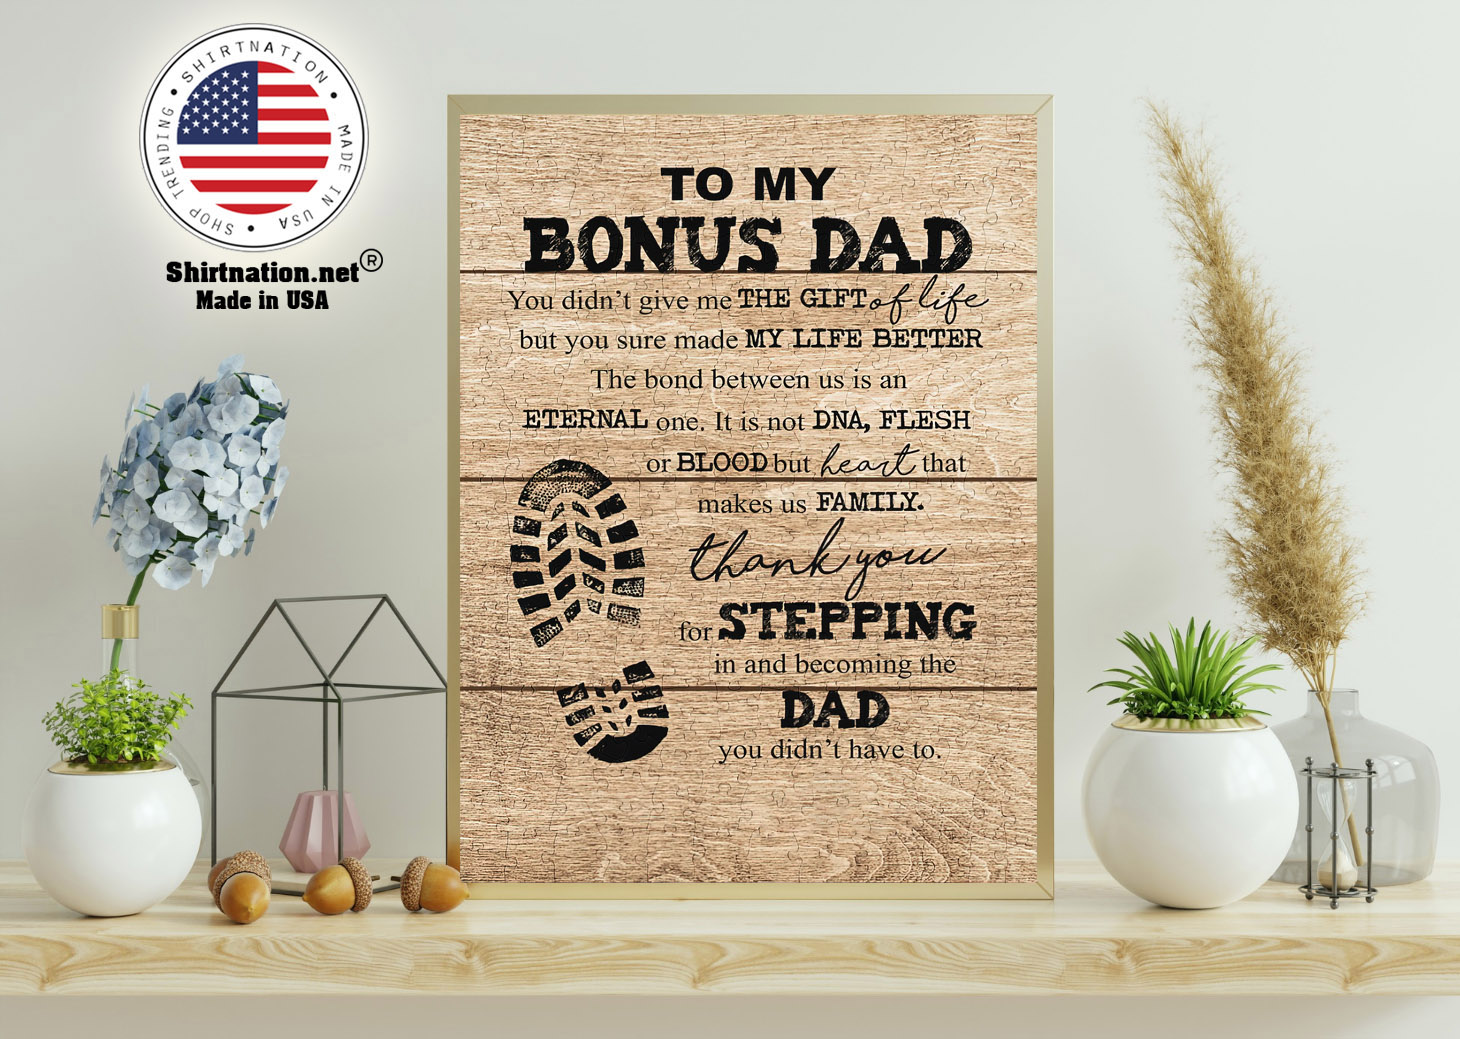 To my bonus dad you didnt give me the gift of life but you sure made my life better poster 11